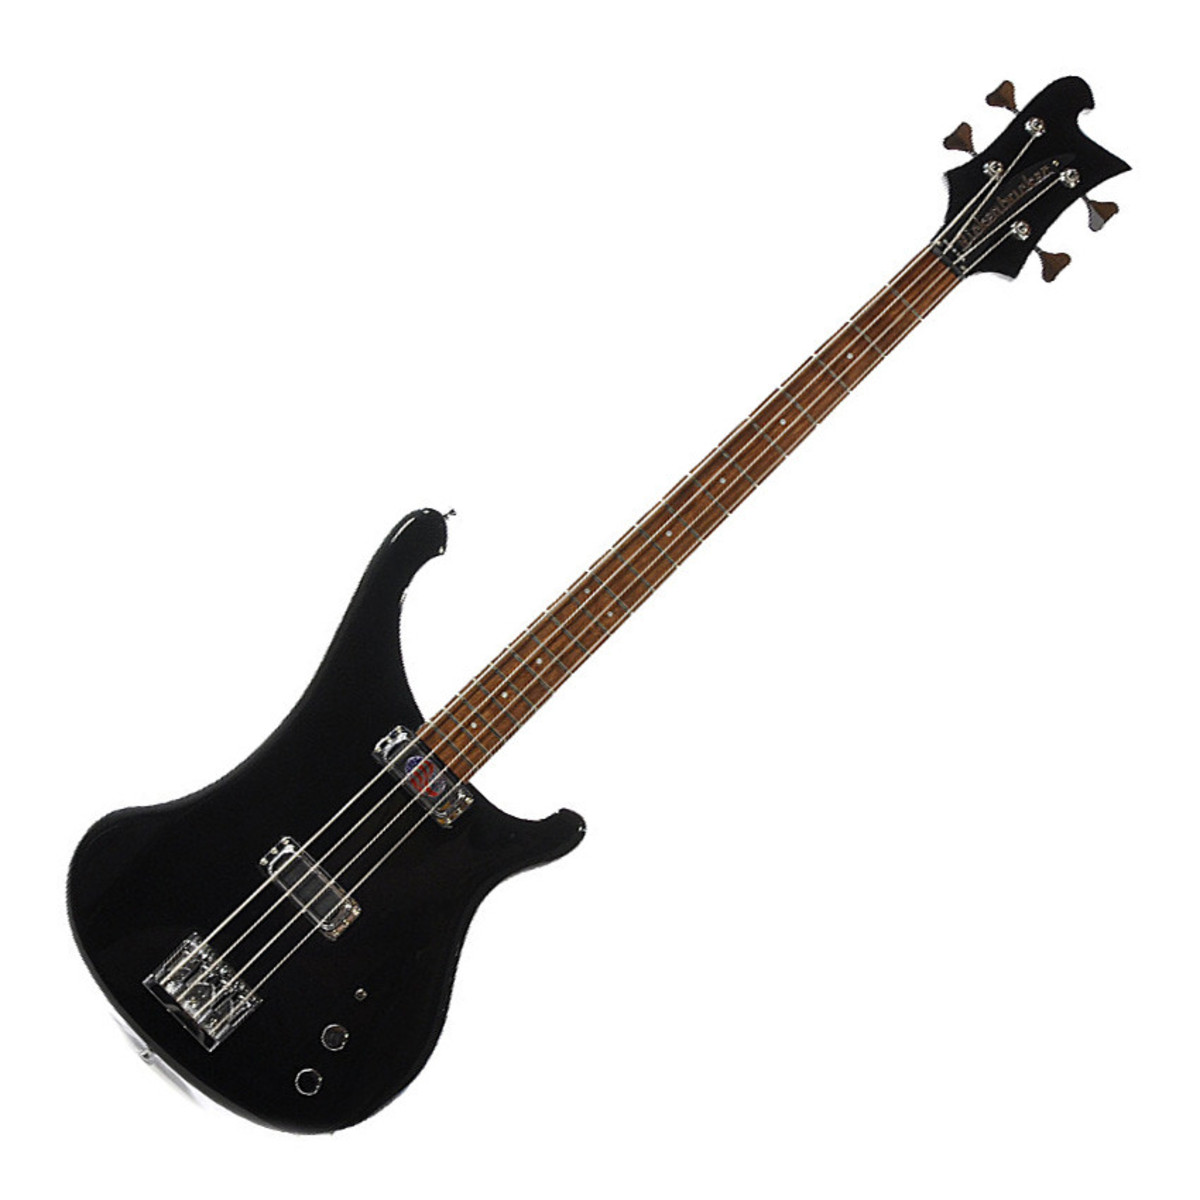 rickenbacker 4004l laredo electric bass guitar jetglo at. Black Bedroom Furniture Sets. Home Design Ideas